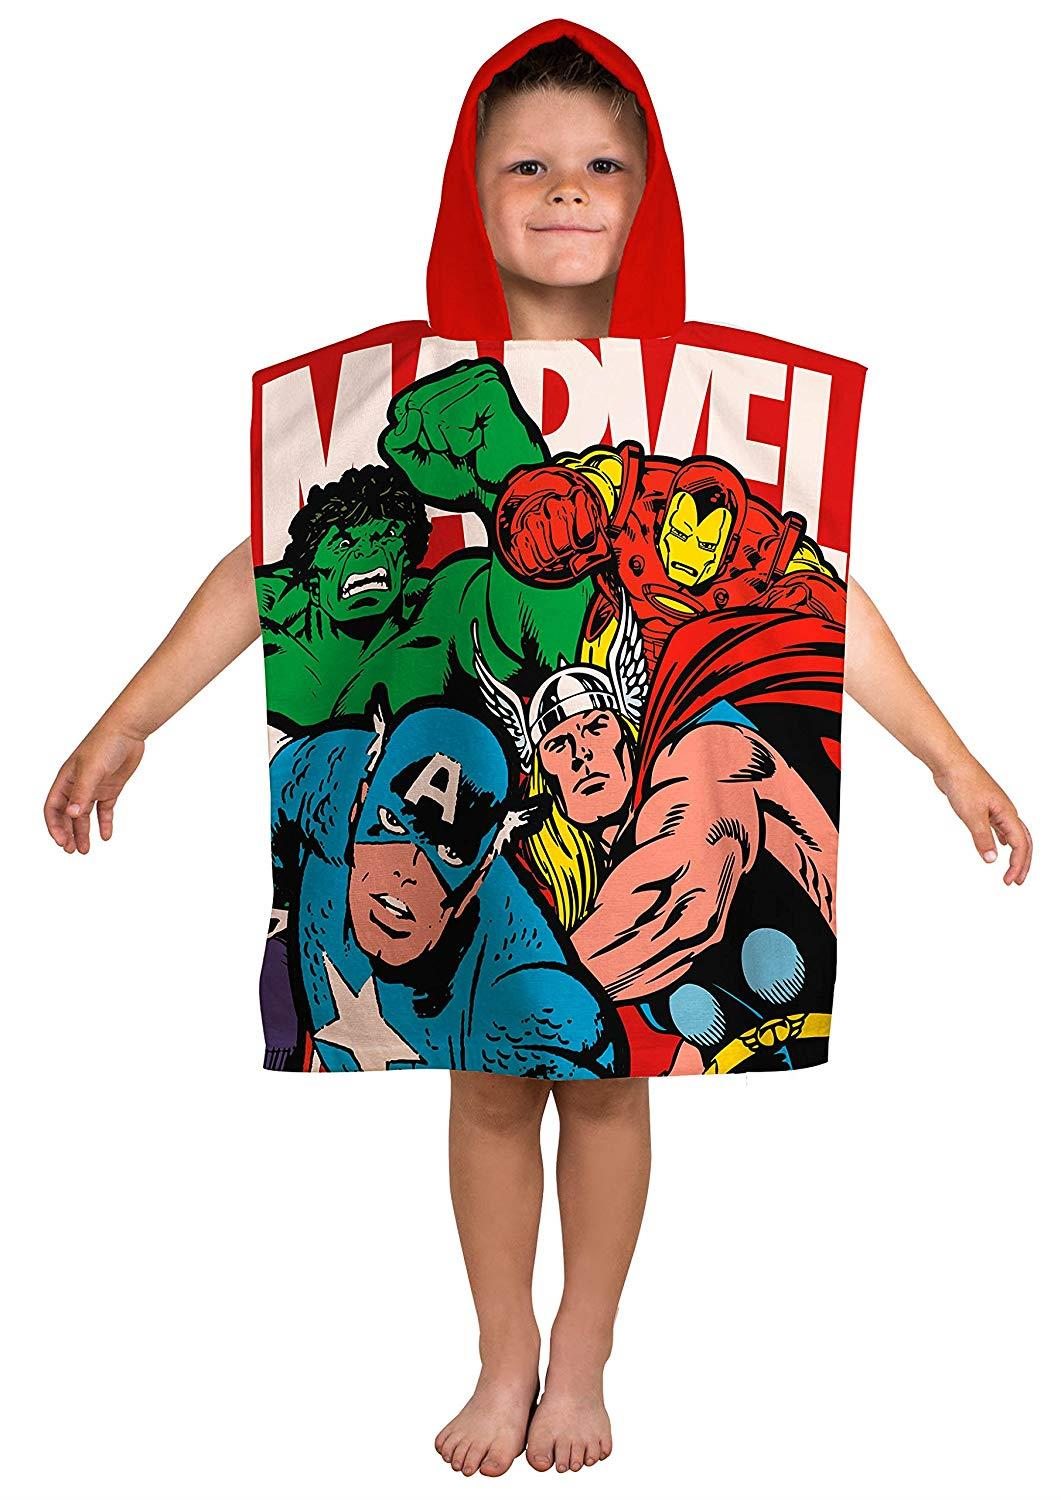 Kids-Boys-Novelty-Girls-Character-Hooded-Towel-Poncho-Beach-Bath-Swim thumbnail 13